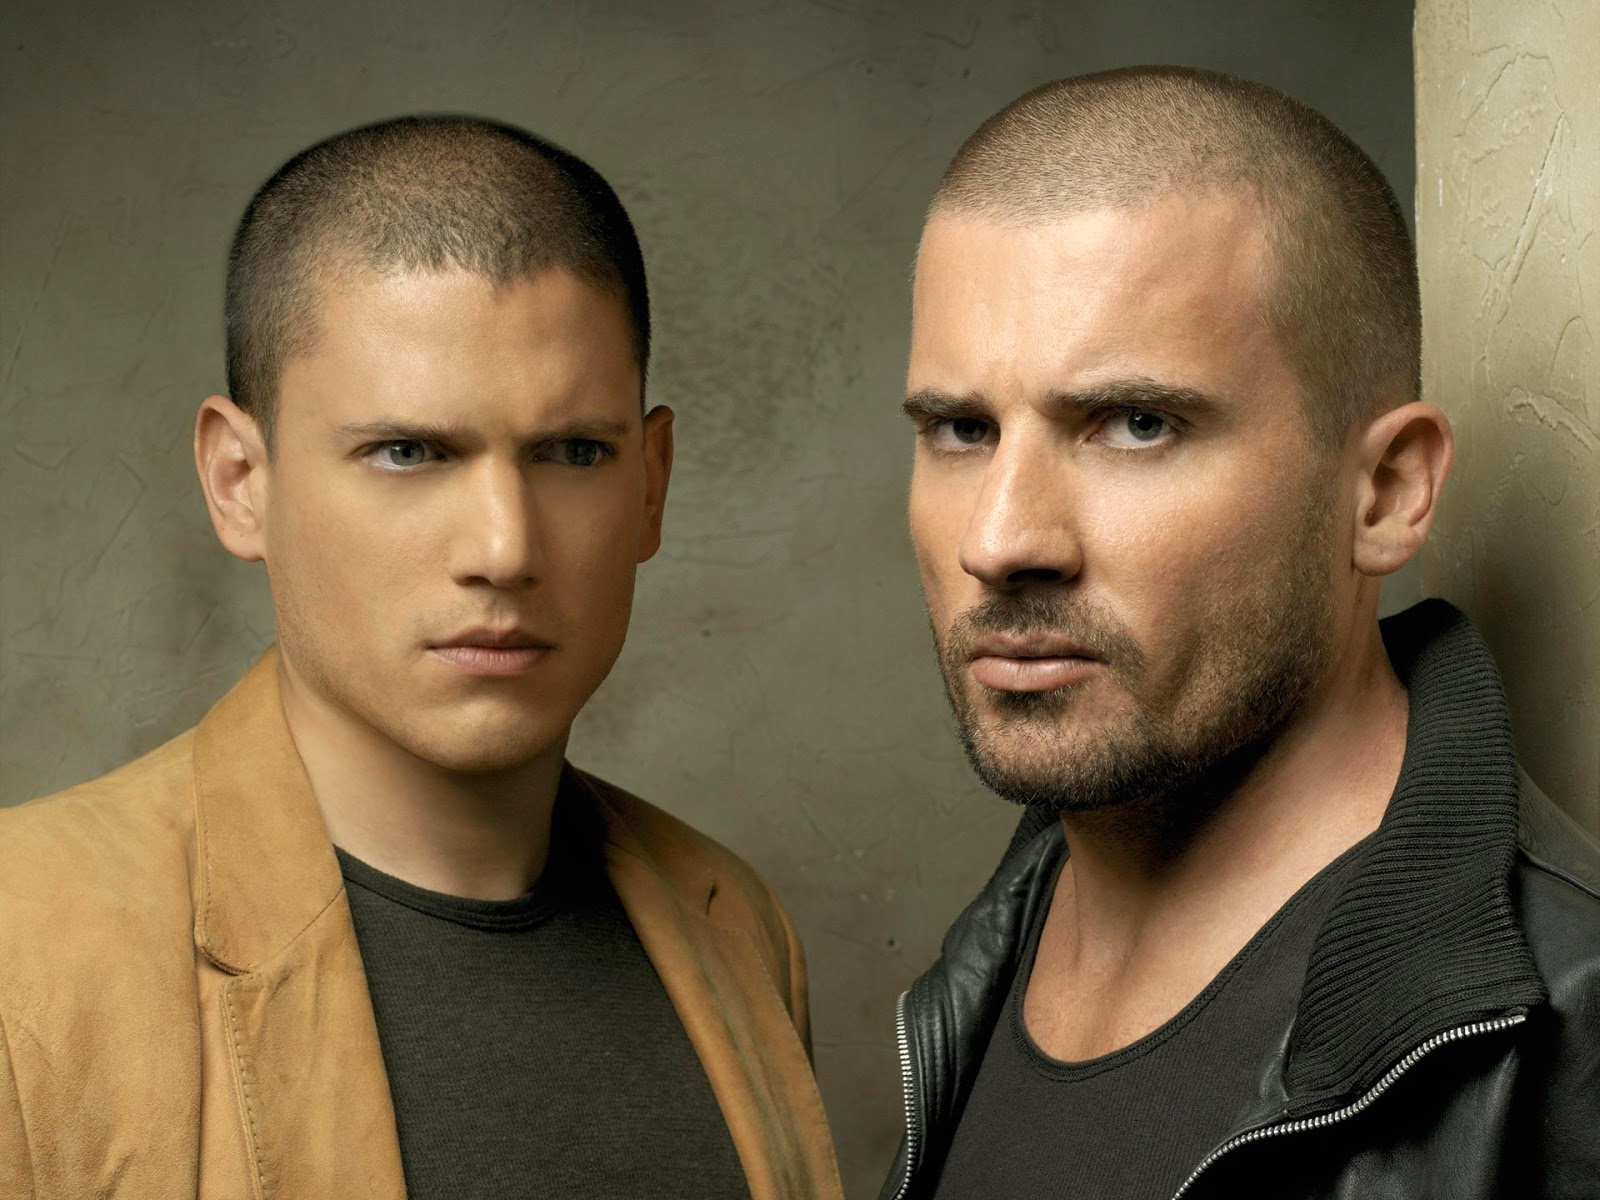 Prison Break season 5: Cast, characters, plot and everything else you need to know about the reboot